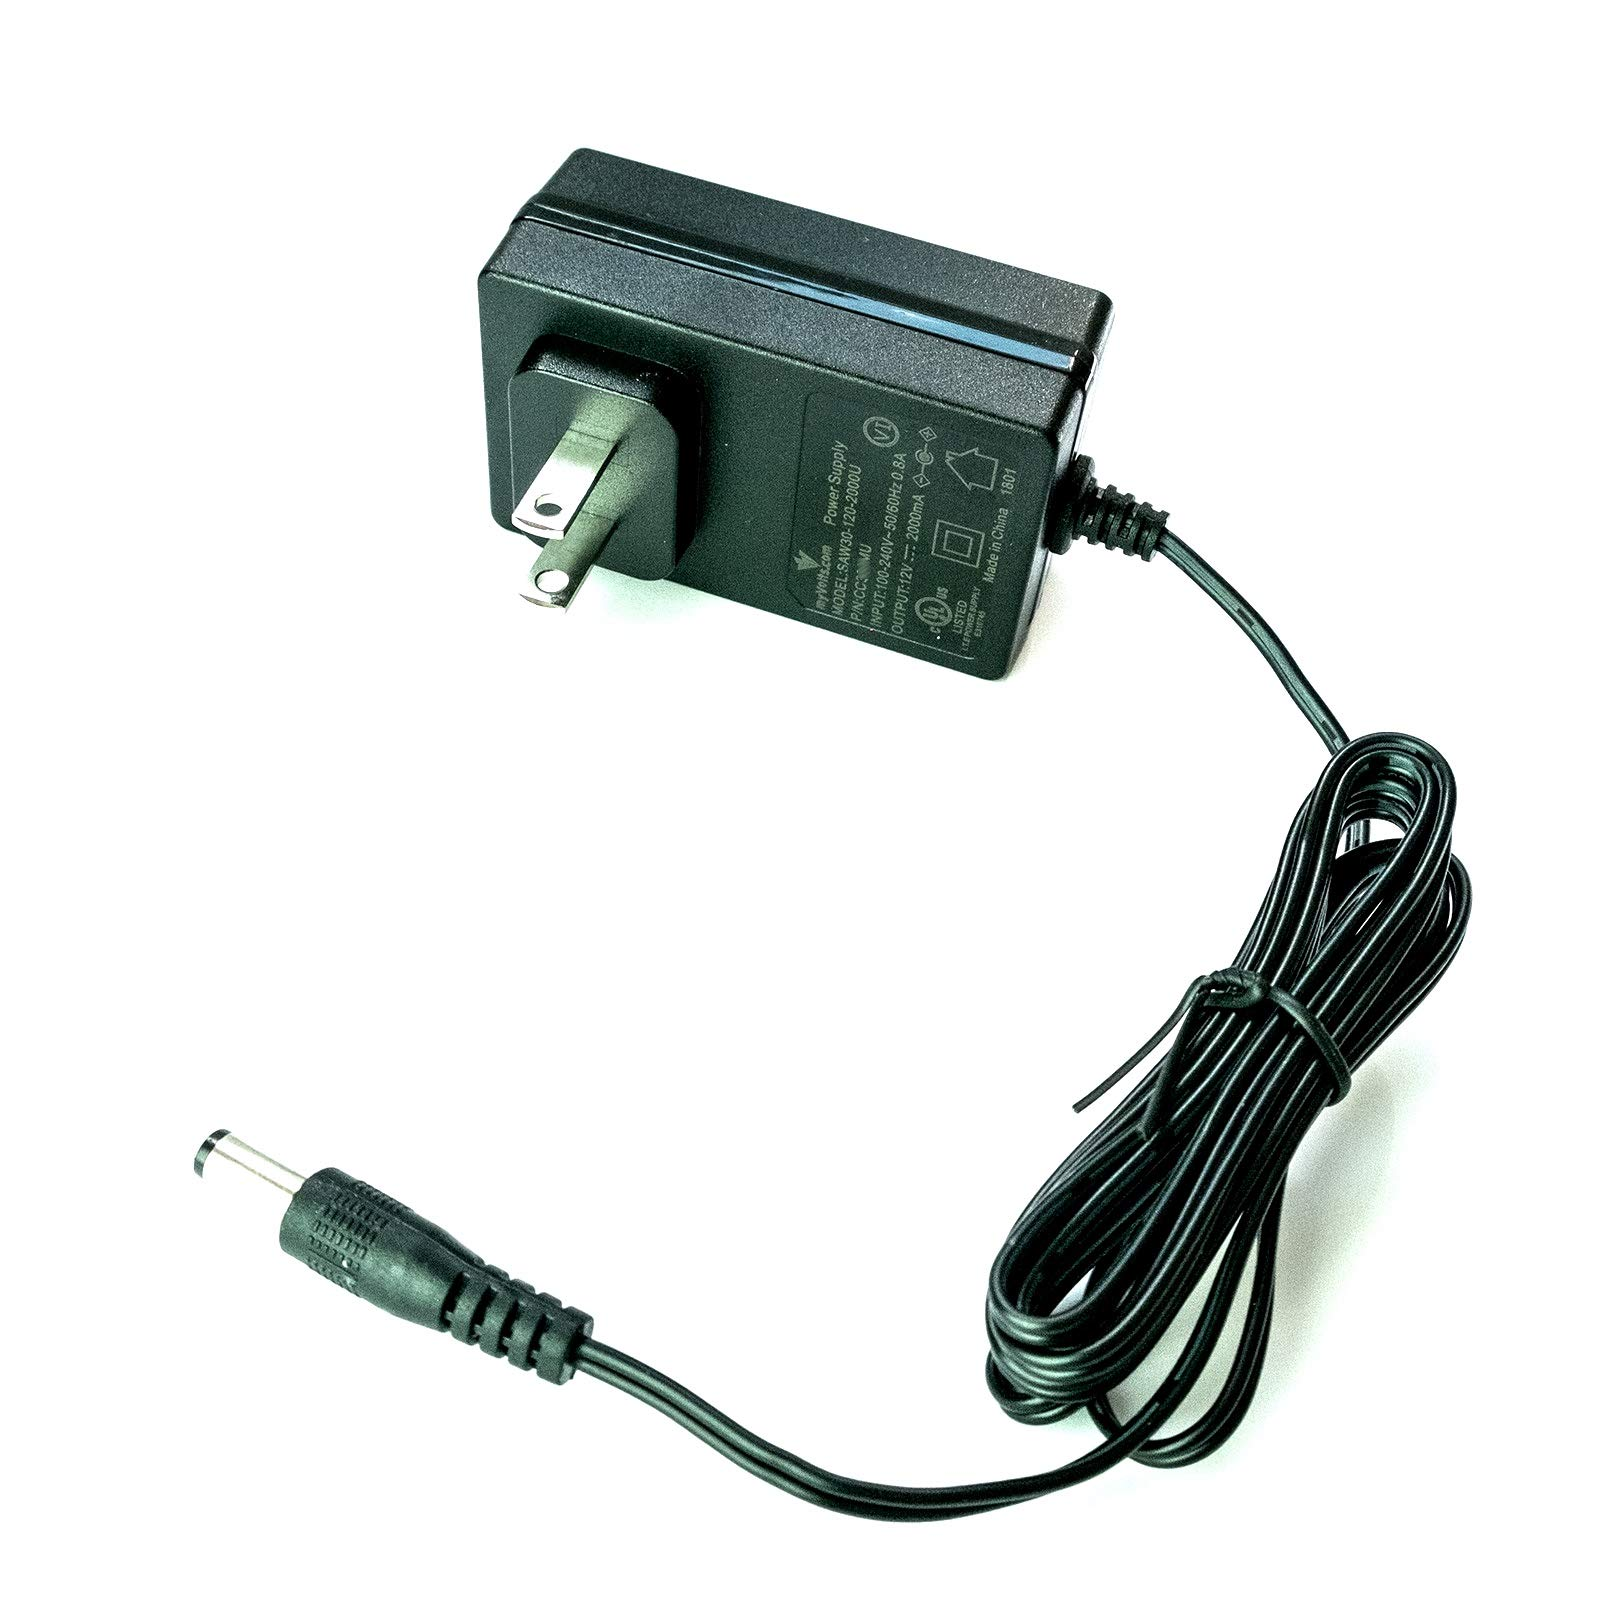 12V Black and Decker BDN12 H1 Drill replacement power supply adaptor - US plug